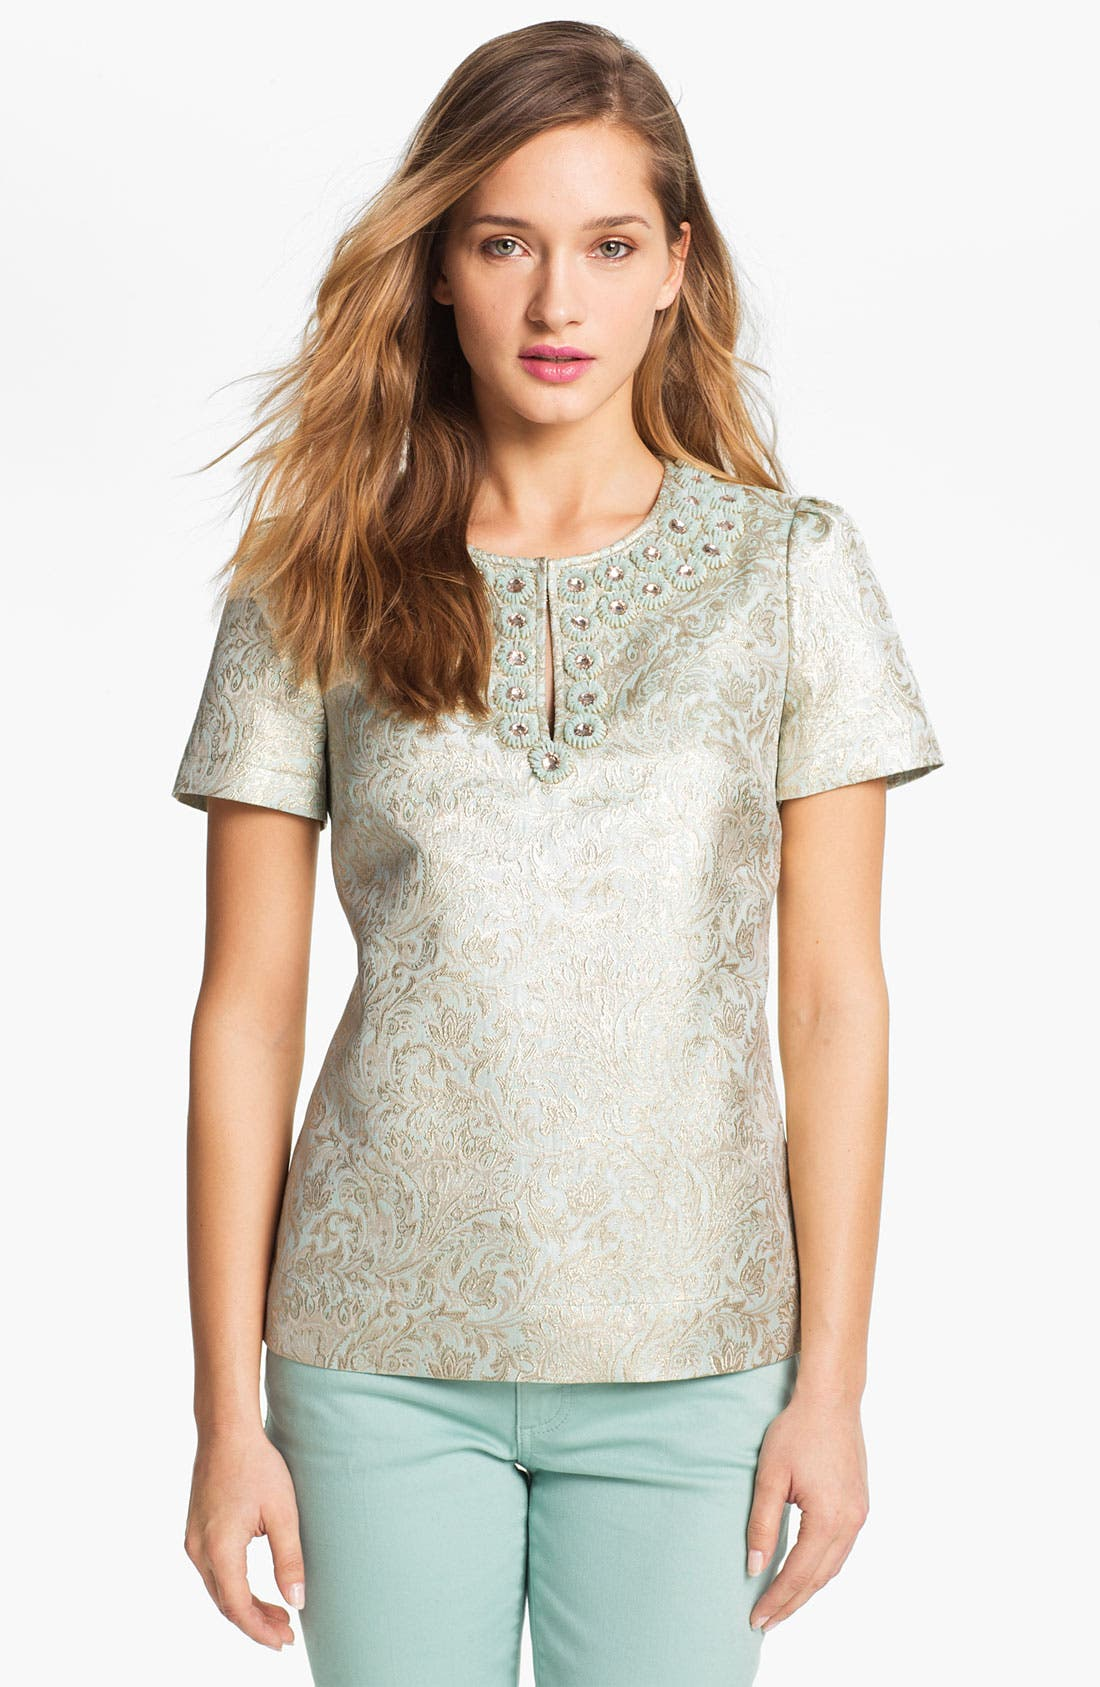 Main Image - Tory Burch 'Lola' Metallic Silk Top